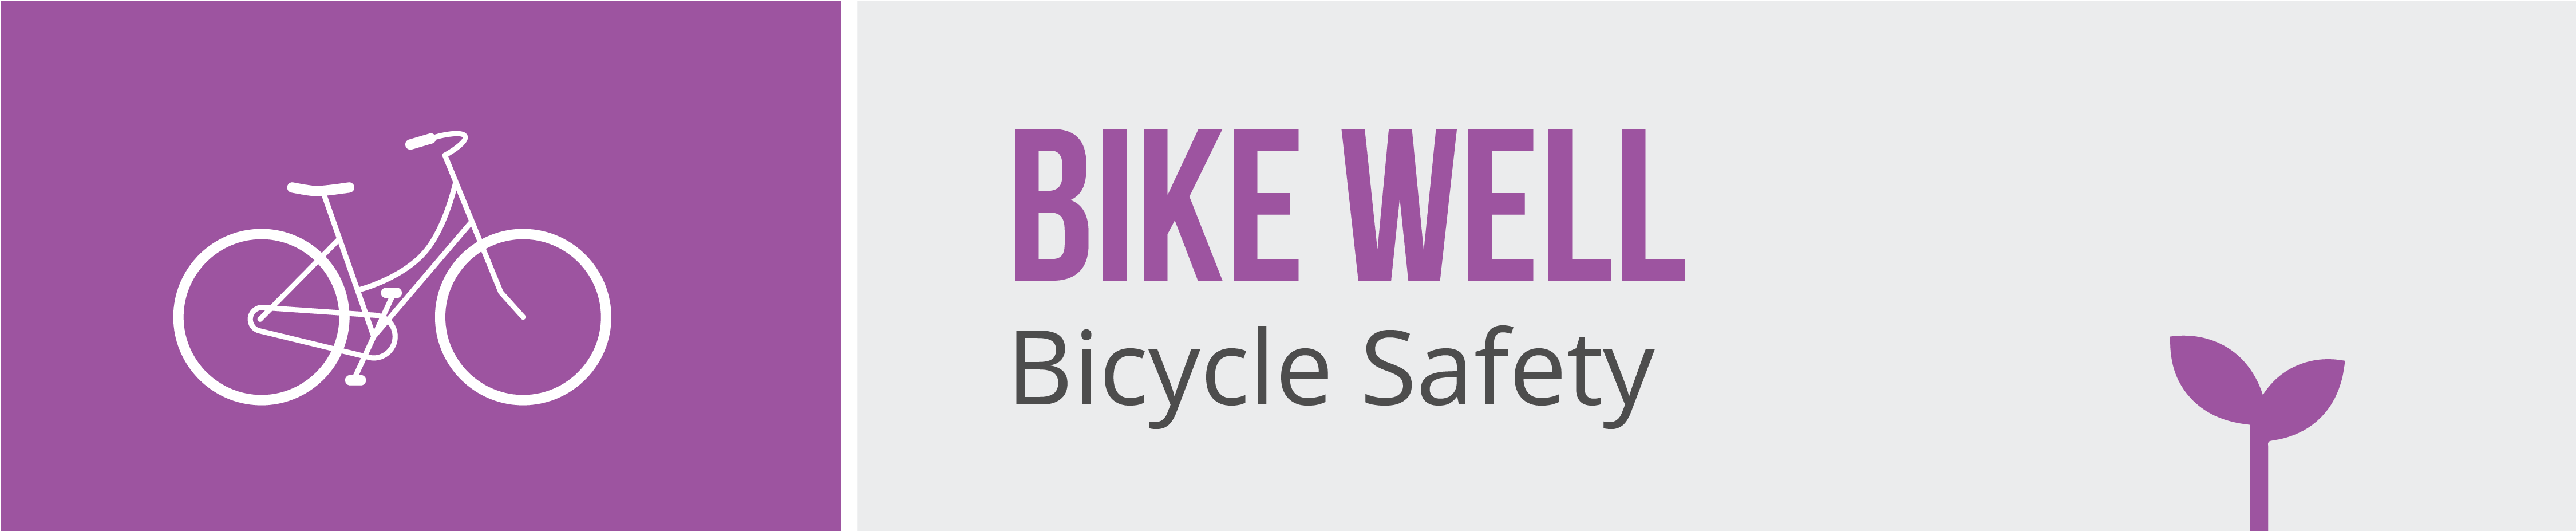 Bike_Well_Banner_2018.png